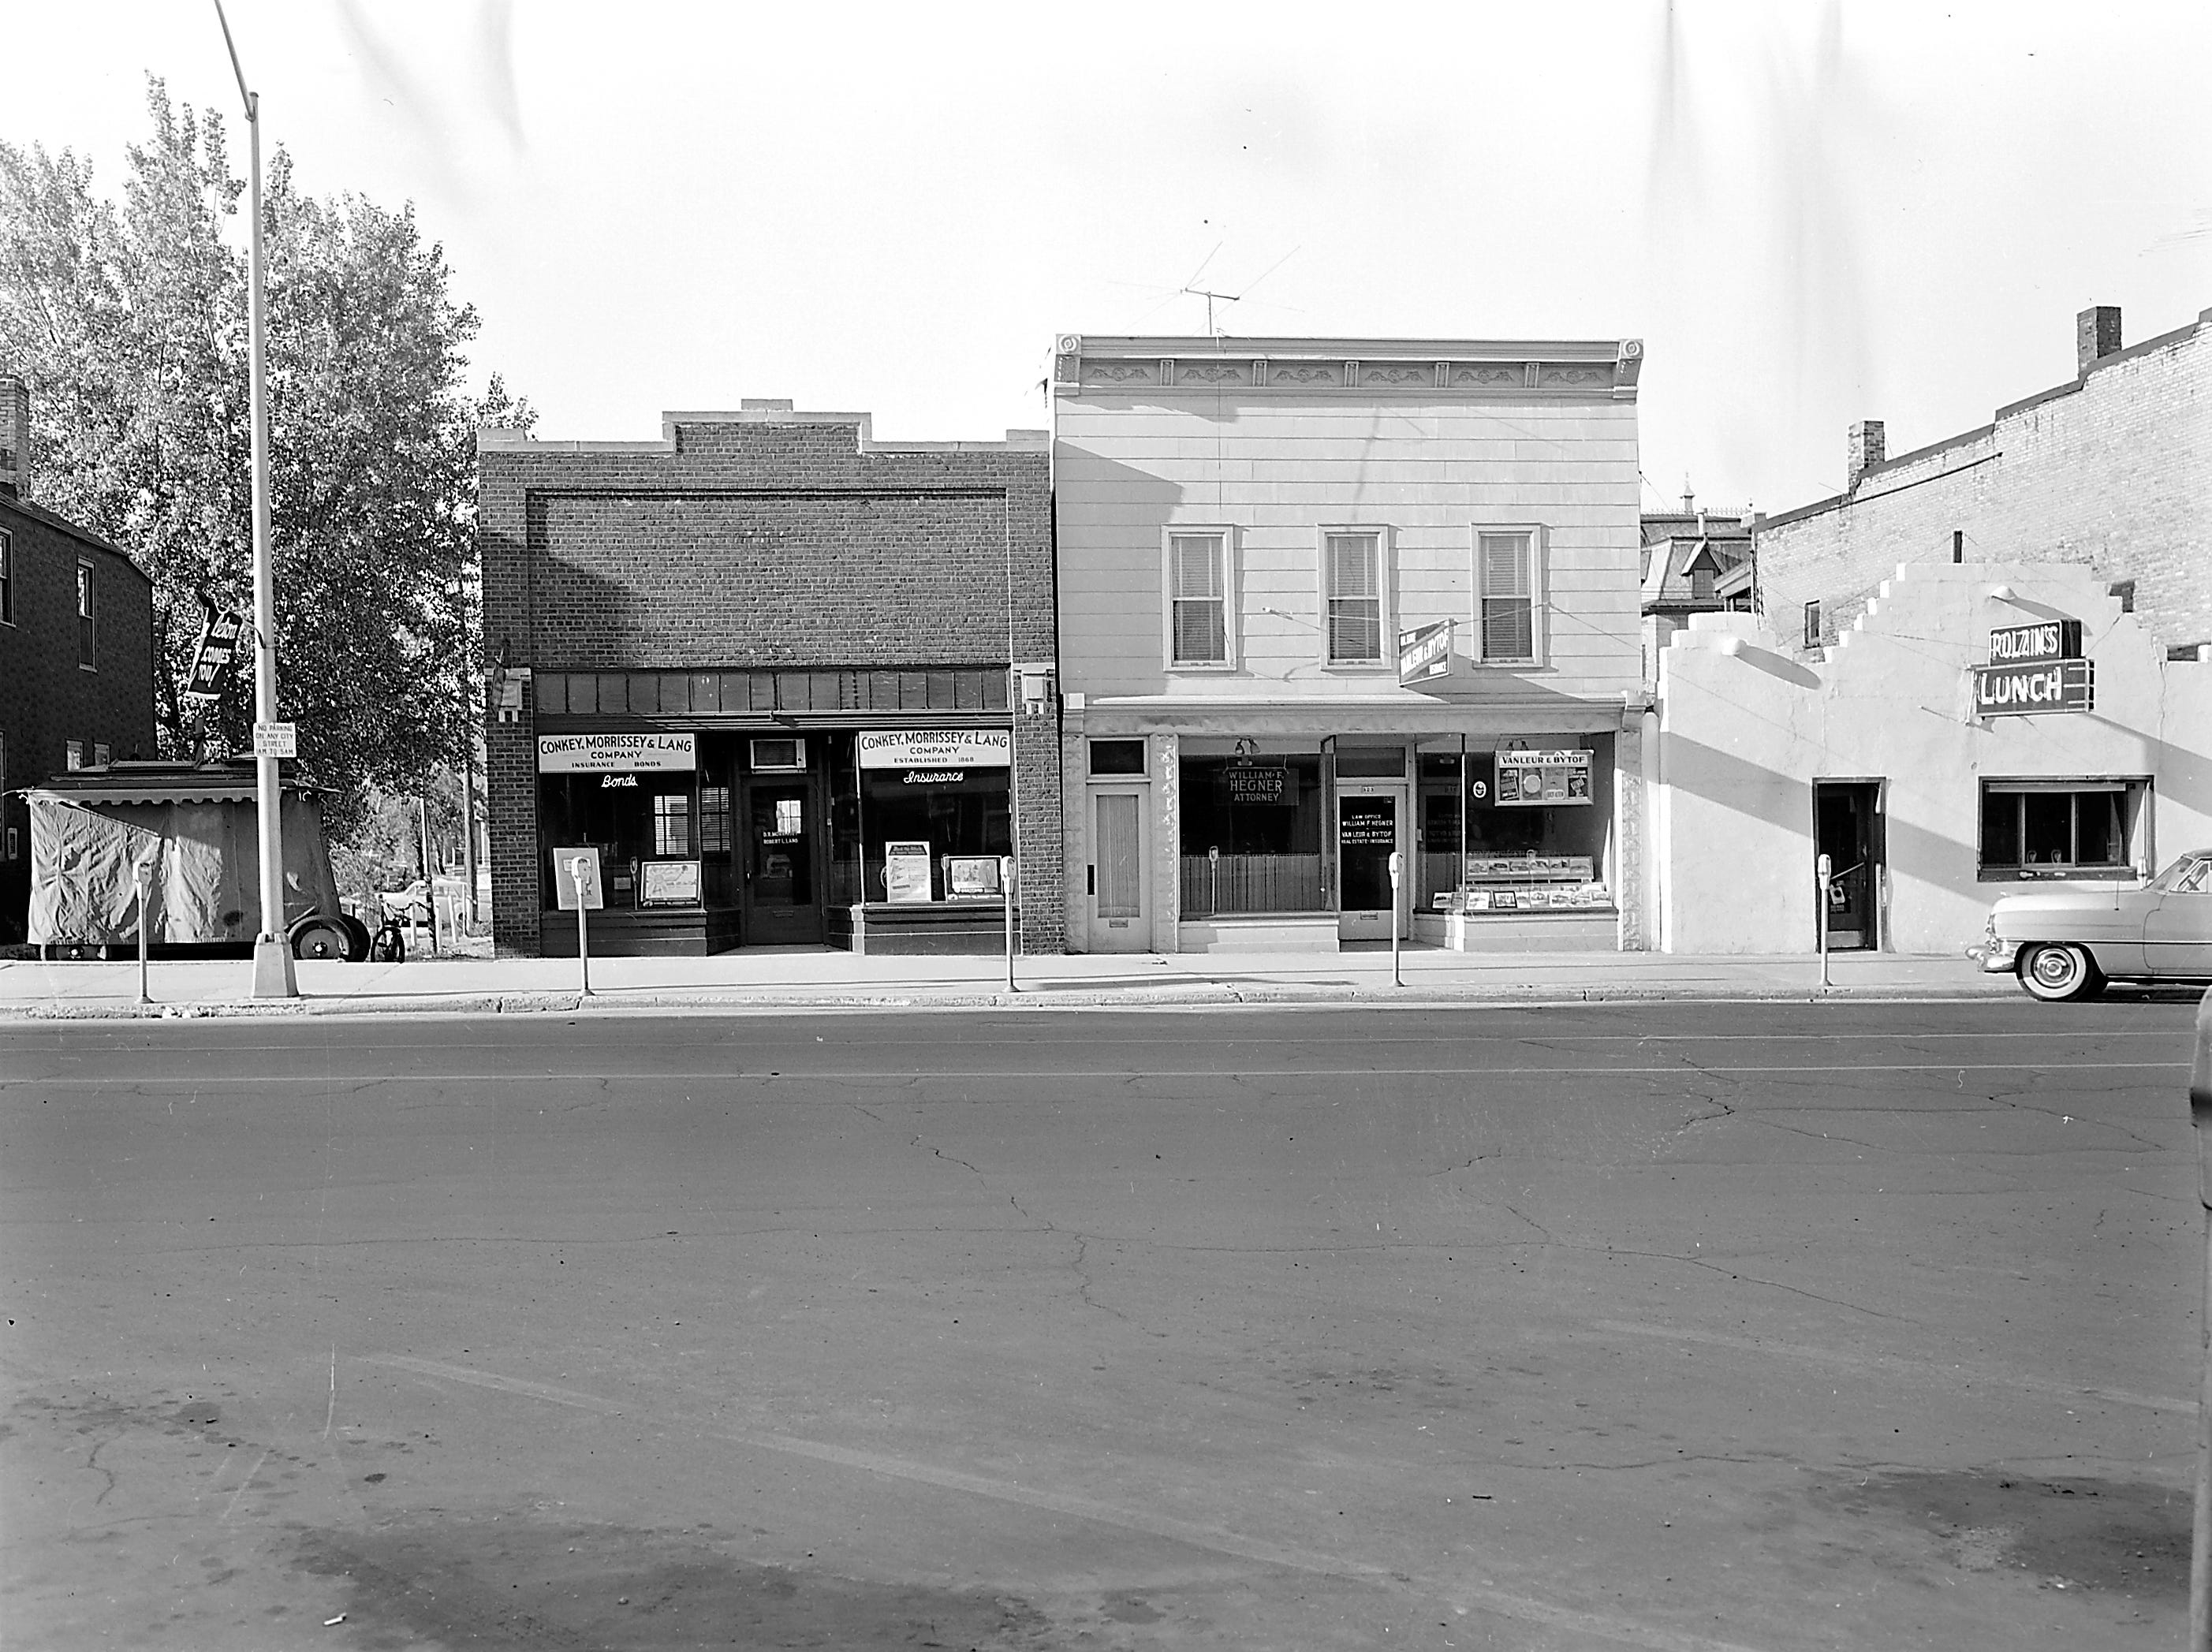 1957 Downtown Appleton. 300 West block on the south side of College Avenue: Conkey, Morrissey & Lang Company. William Hegner Attorney. Vanleur & Bytof. Polzin's Lunch. Post-Crescent photo by staff. 4x5 negative_folder C56 A